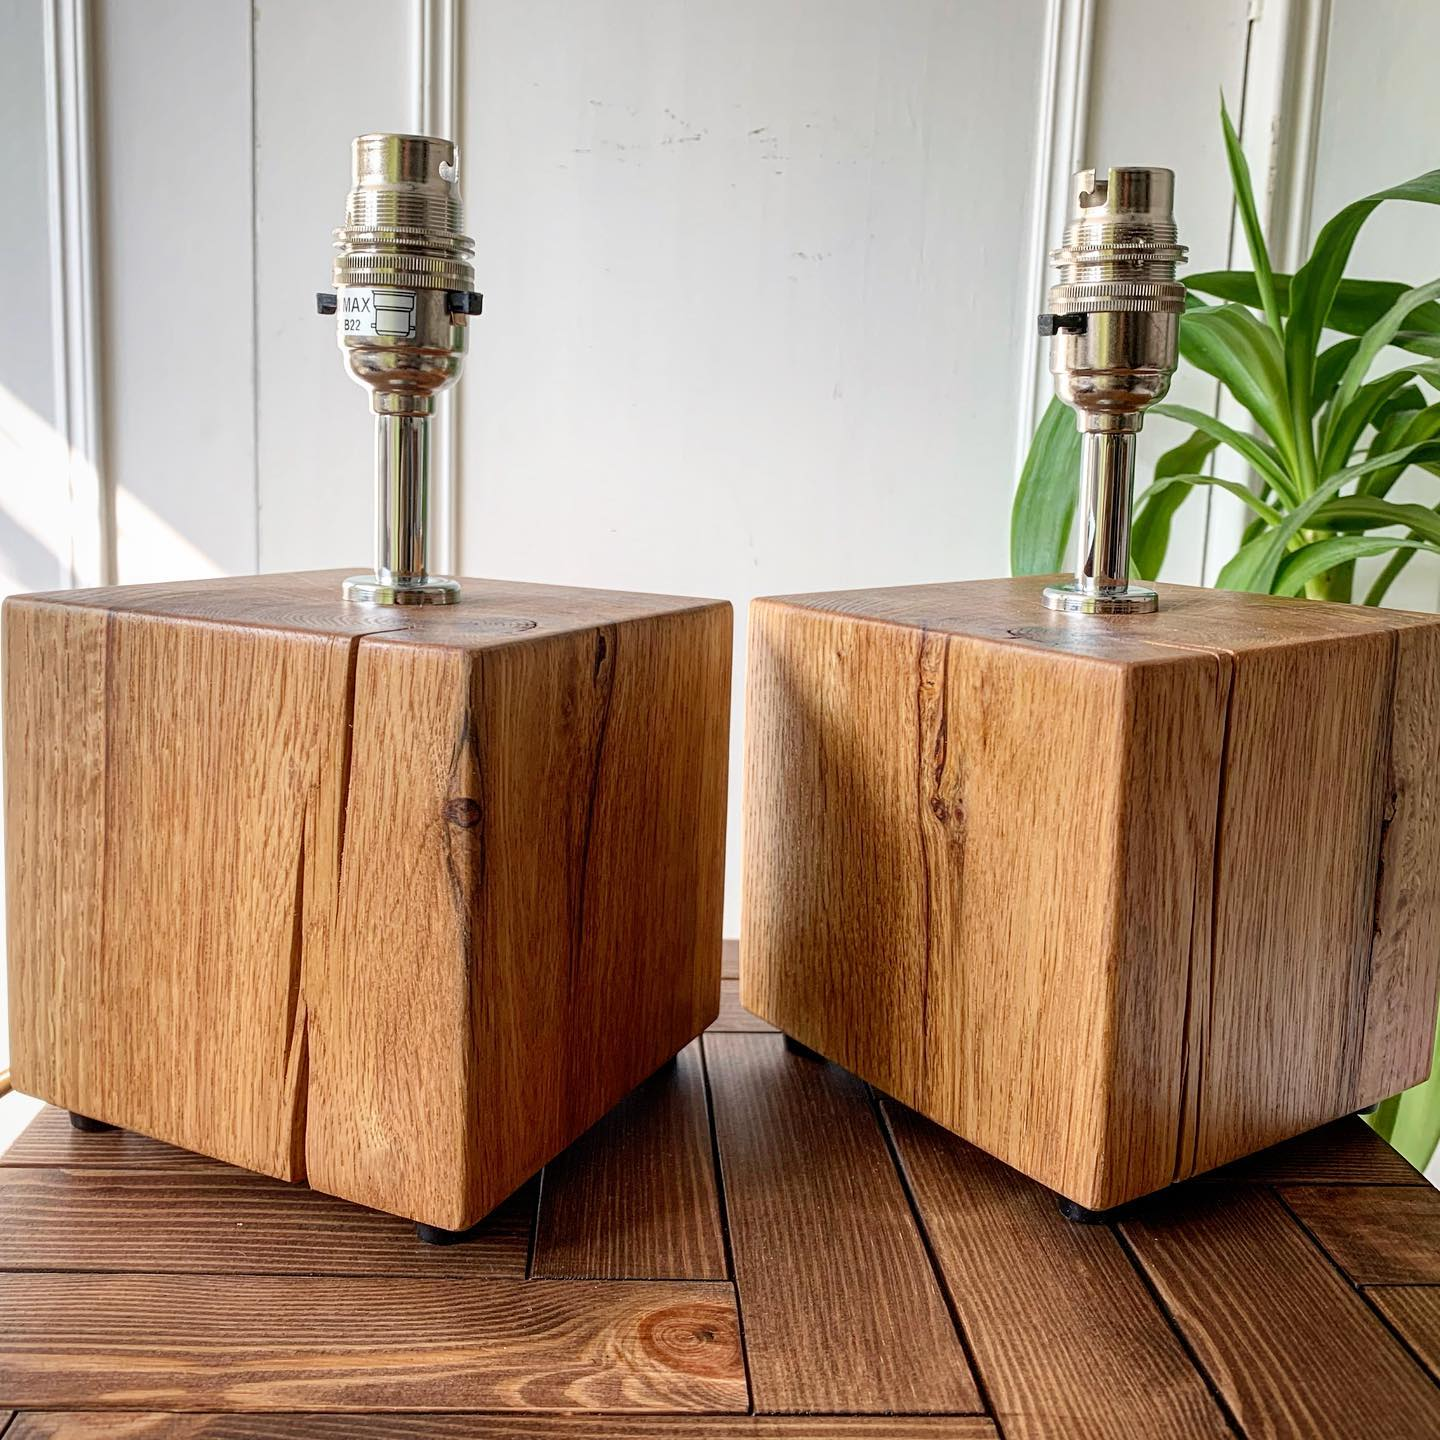 This lovely pair of lamps are all wired up and ready to go to their new home in a few days! They're so cute!!!! ...#lampbase #oak #handcrafted #moodlighting #bedsidelamp #pair #matchingnotmatching #ginger #tweed #smallbusiness #bespoke #specialorder #commission #craft #unique #characterful #madefromwood